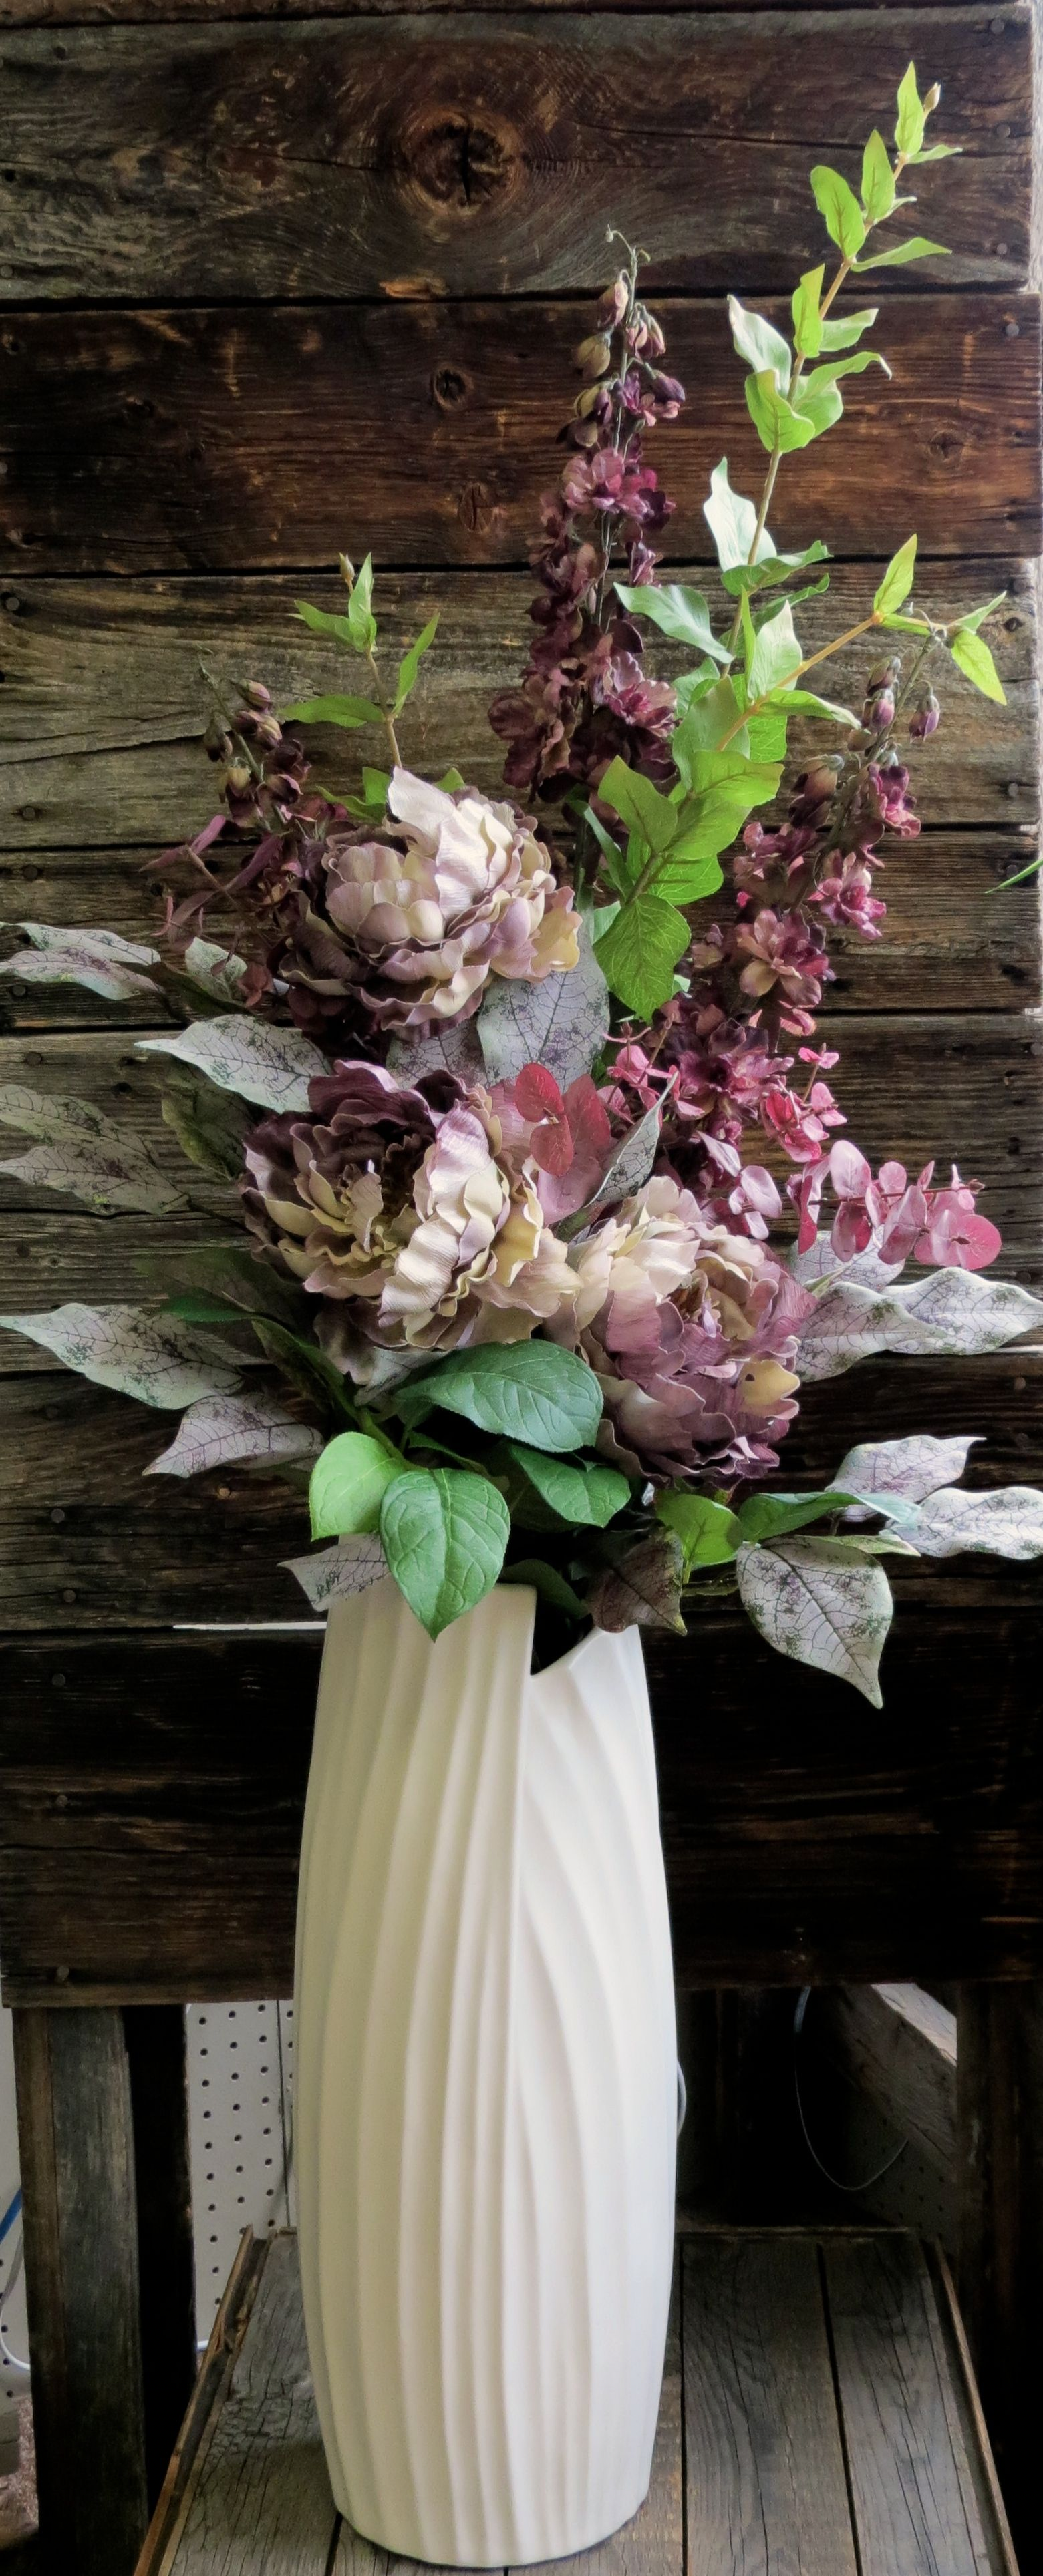 Big Vases For Living Room Tall Floor Vase With Romantic Mauve And Purple Silk Flowers